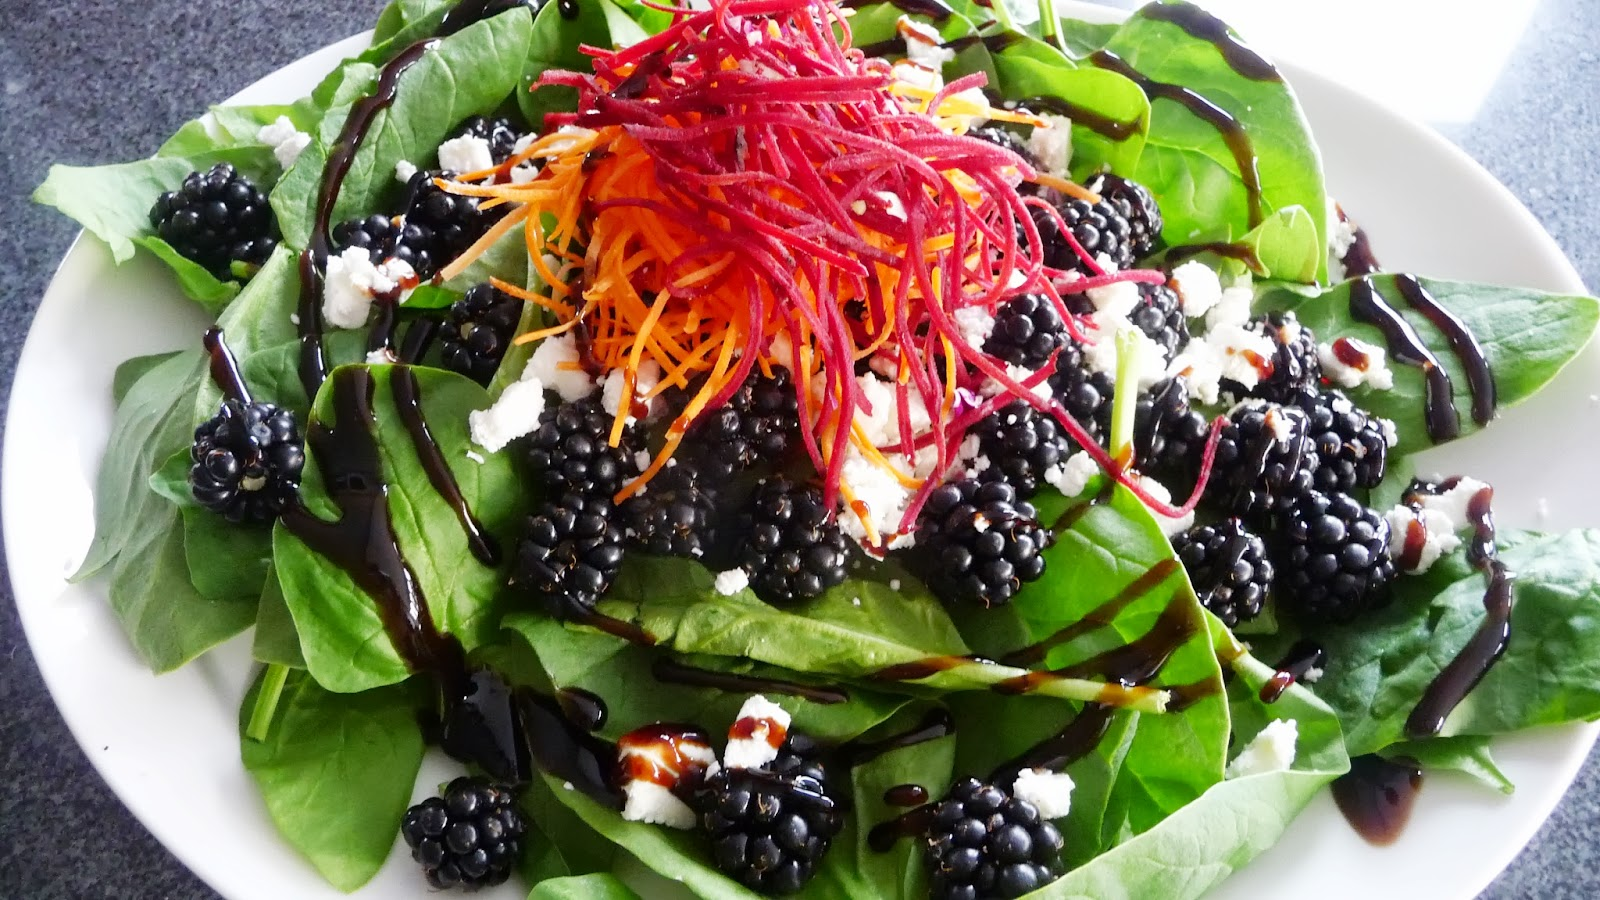 Pinks Pantry: Blackberry Goat Cheese Salad